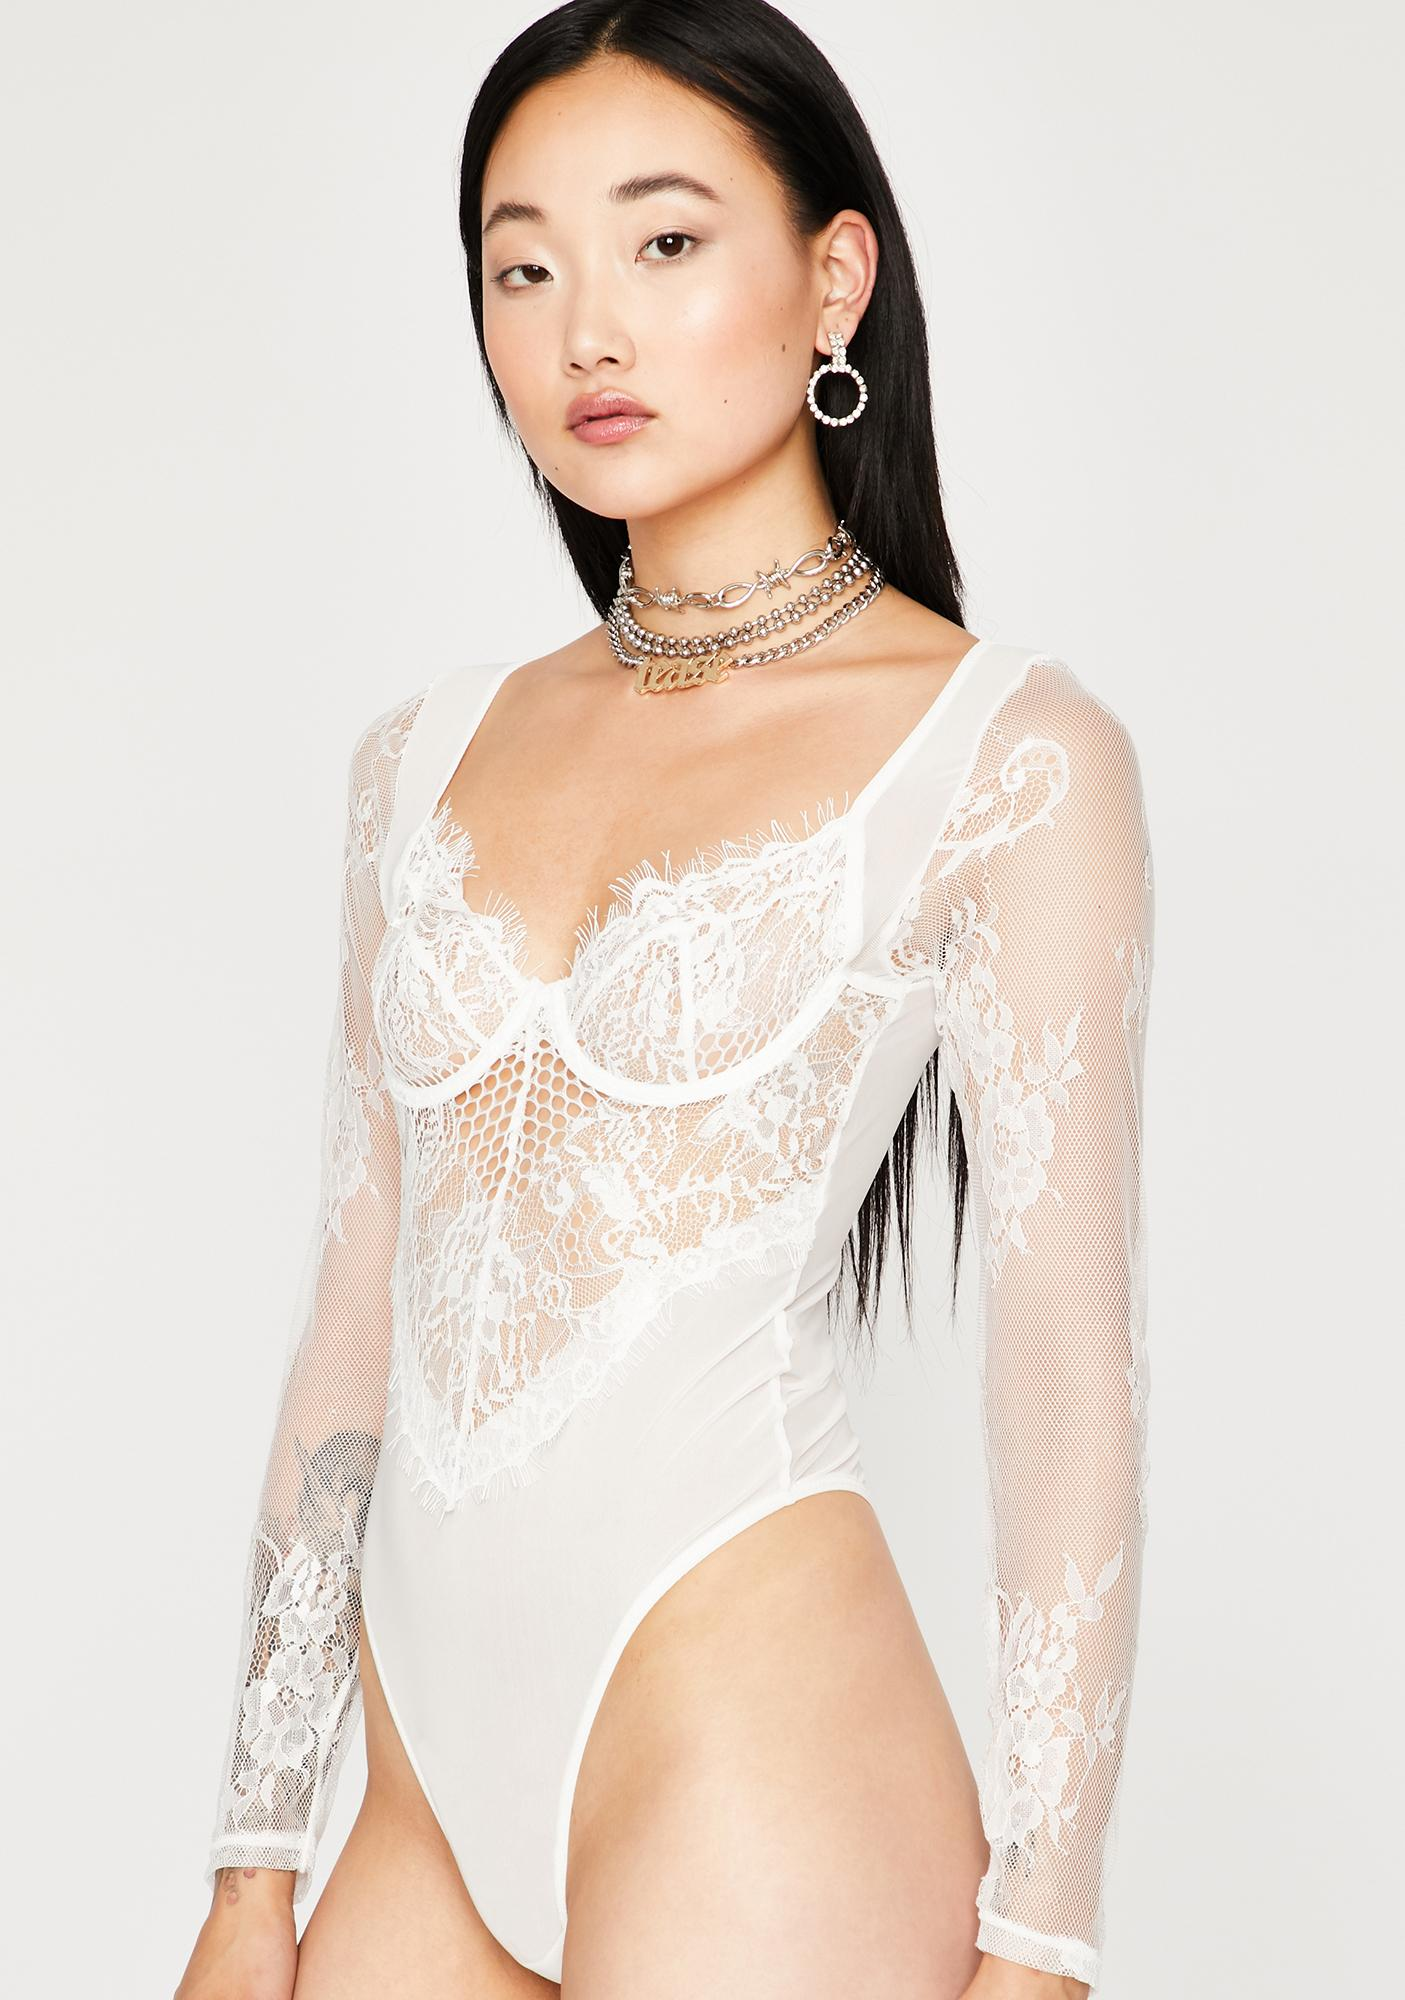 Frost Snatched Sinner Lace Bodysuit